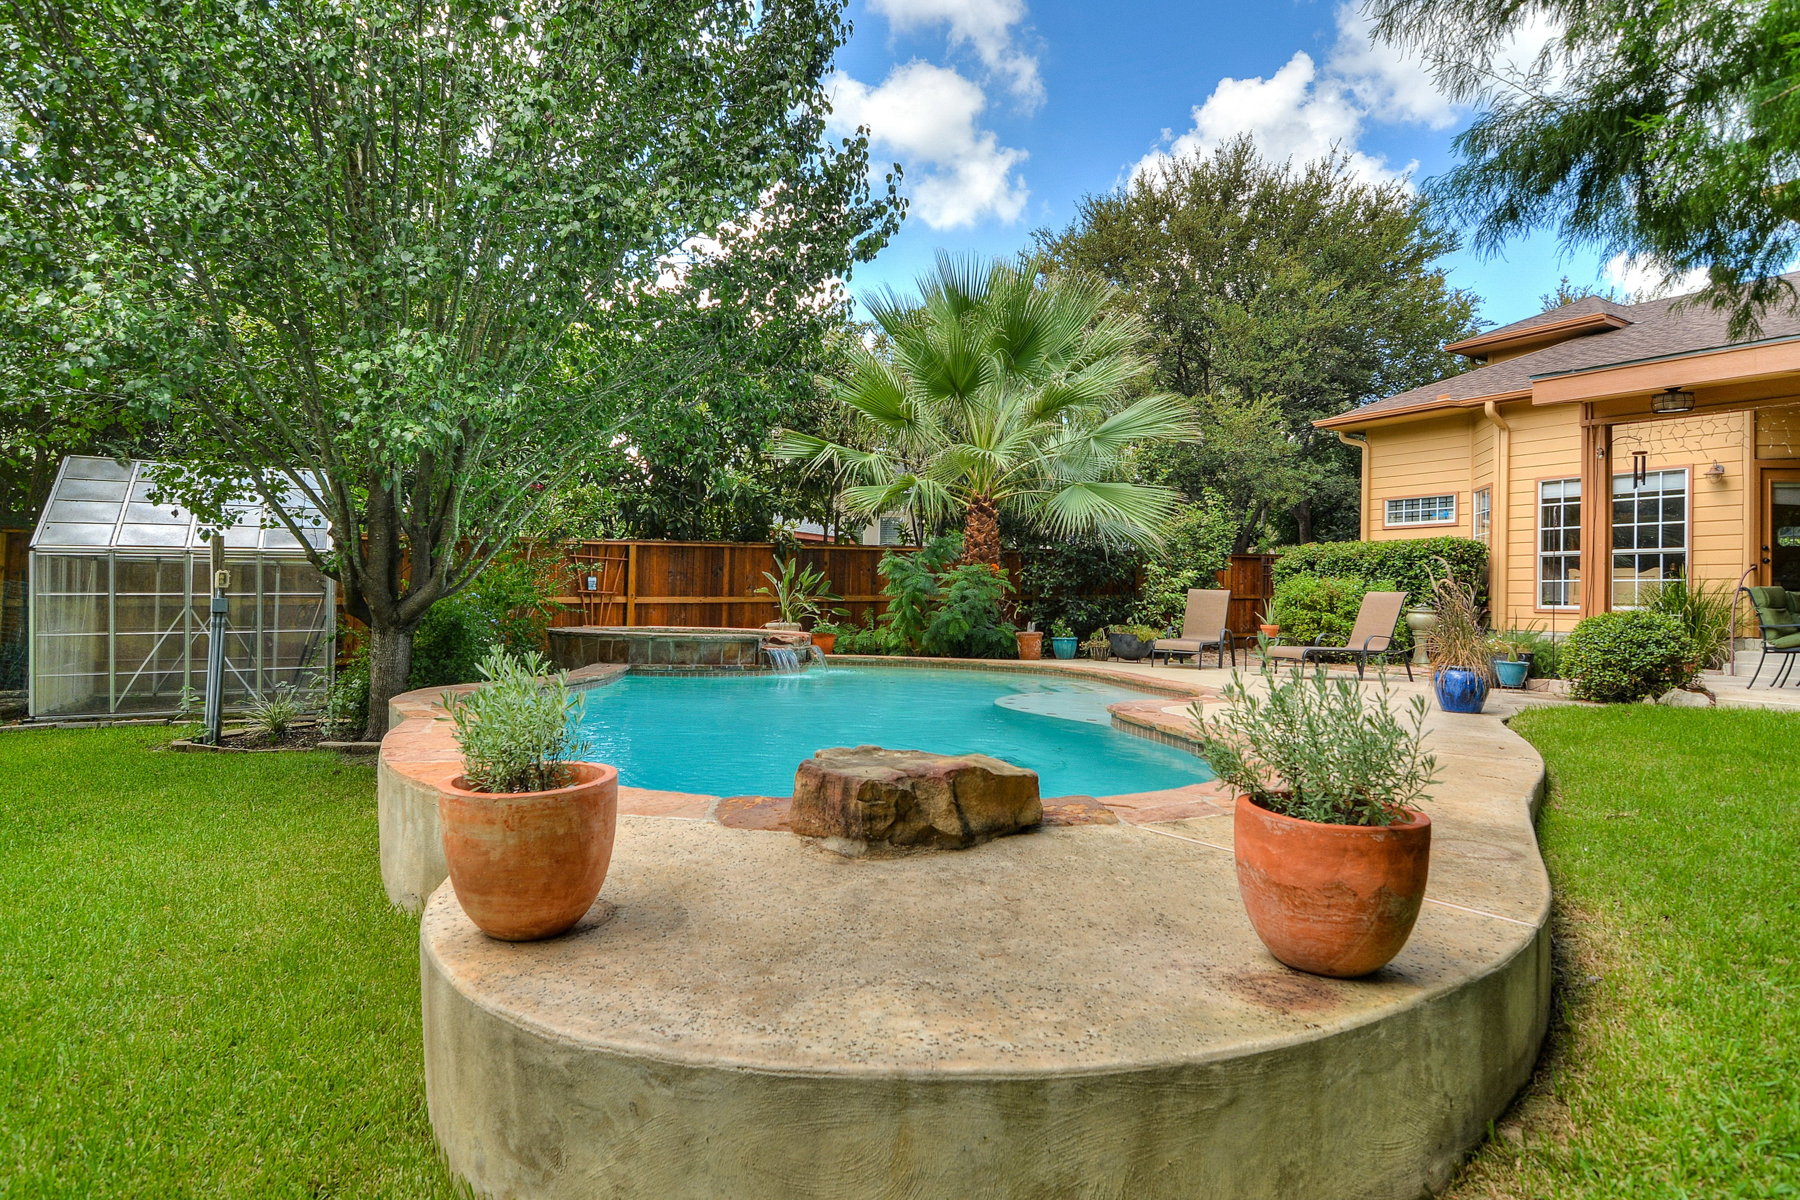 Additional photo for property listing at Private Oasis in Bluffview Greens 14 Greens Whisper San Antonio, Texas 78216 United States